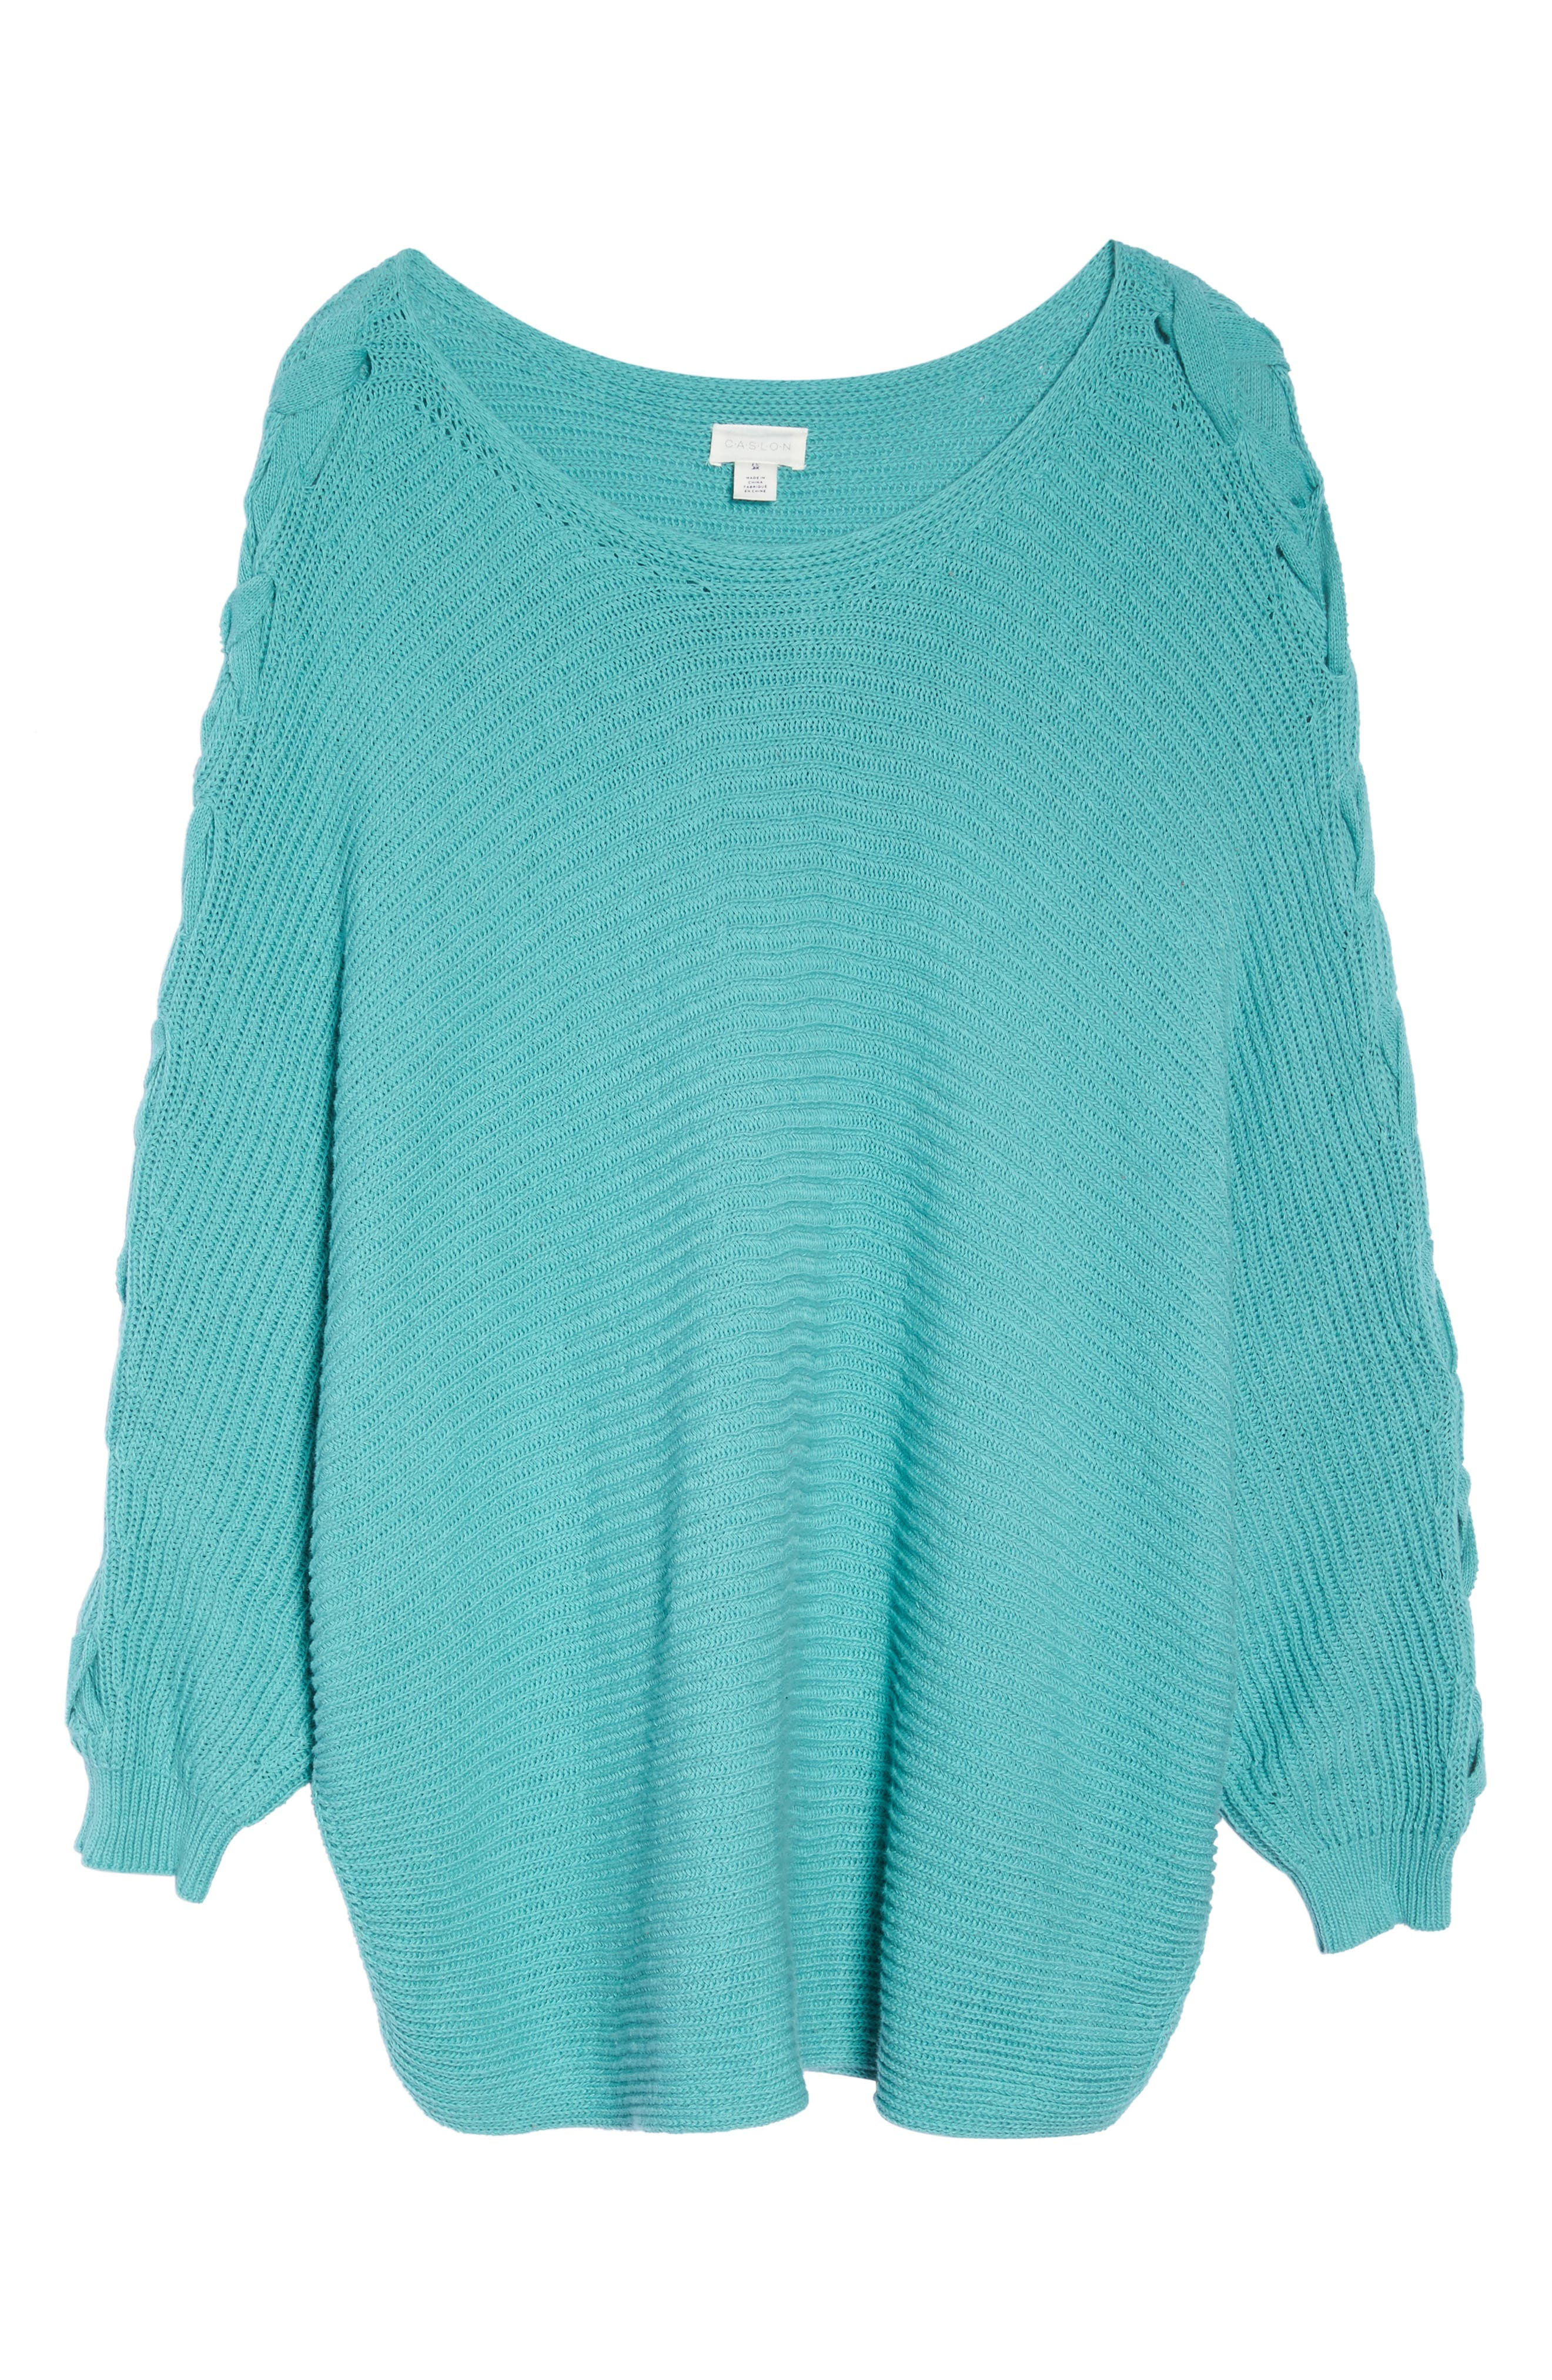 Lace-Up Sleeve Sweater,                             Alternate thumbnail 6, color,                             310